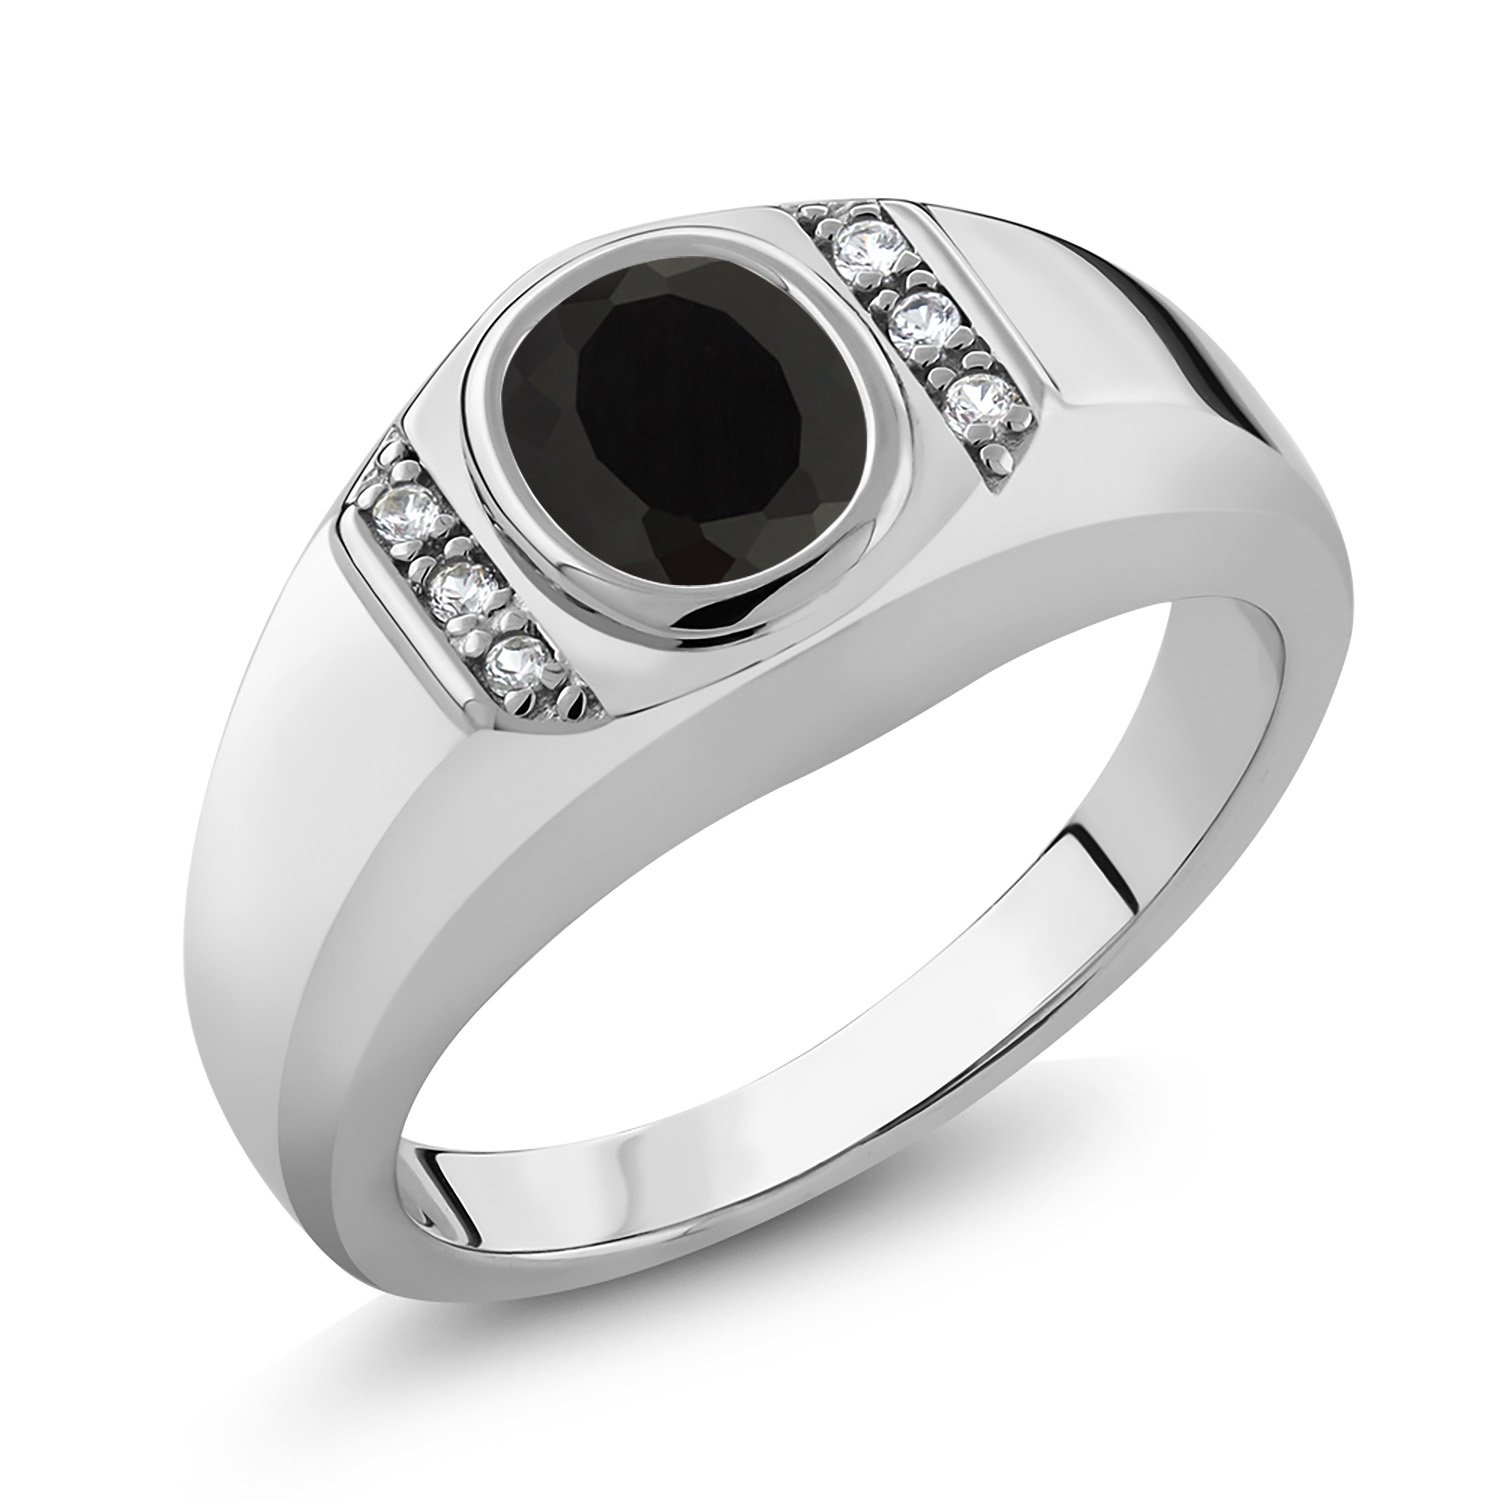 Gem Stone King Men's 925 Sterling Silver Black Onyx and White Created Sapphire Ring (1.31 Ct Oval, Gemstone Birthstone, Available in size 7, 8, 9, 10, 11, 12, 13)